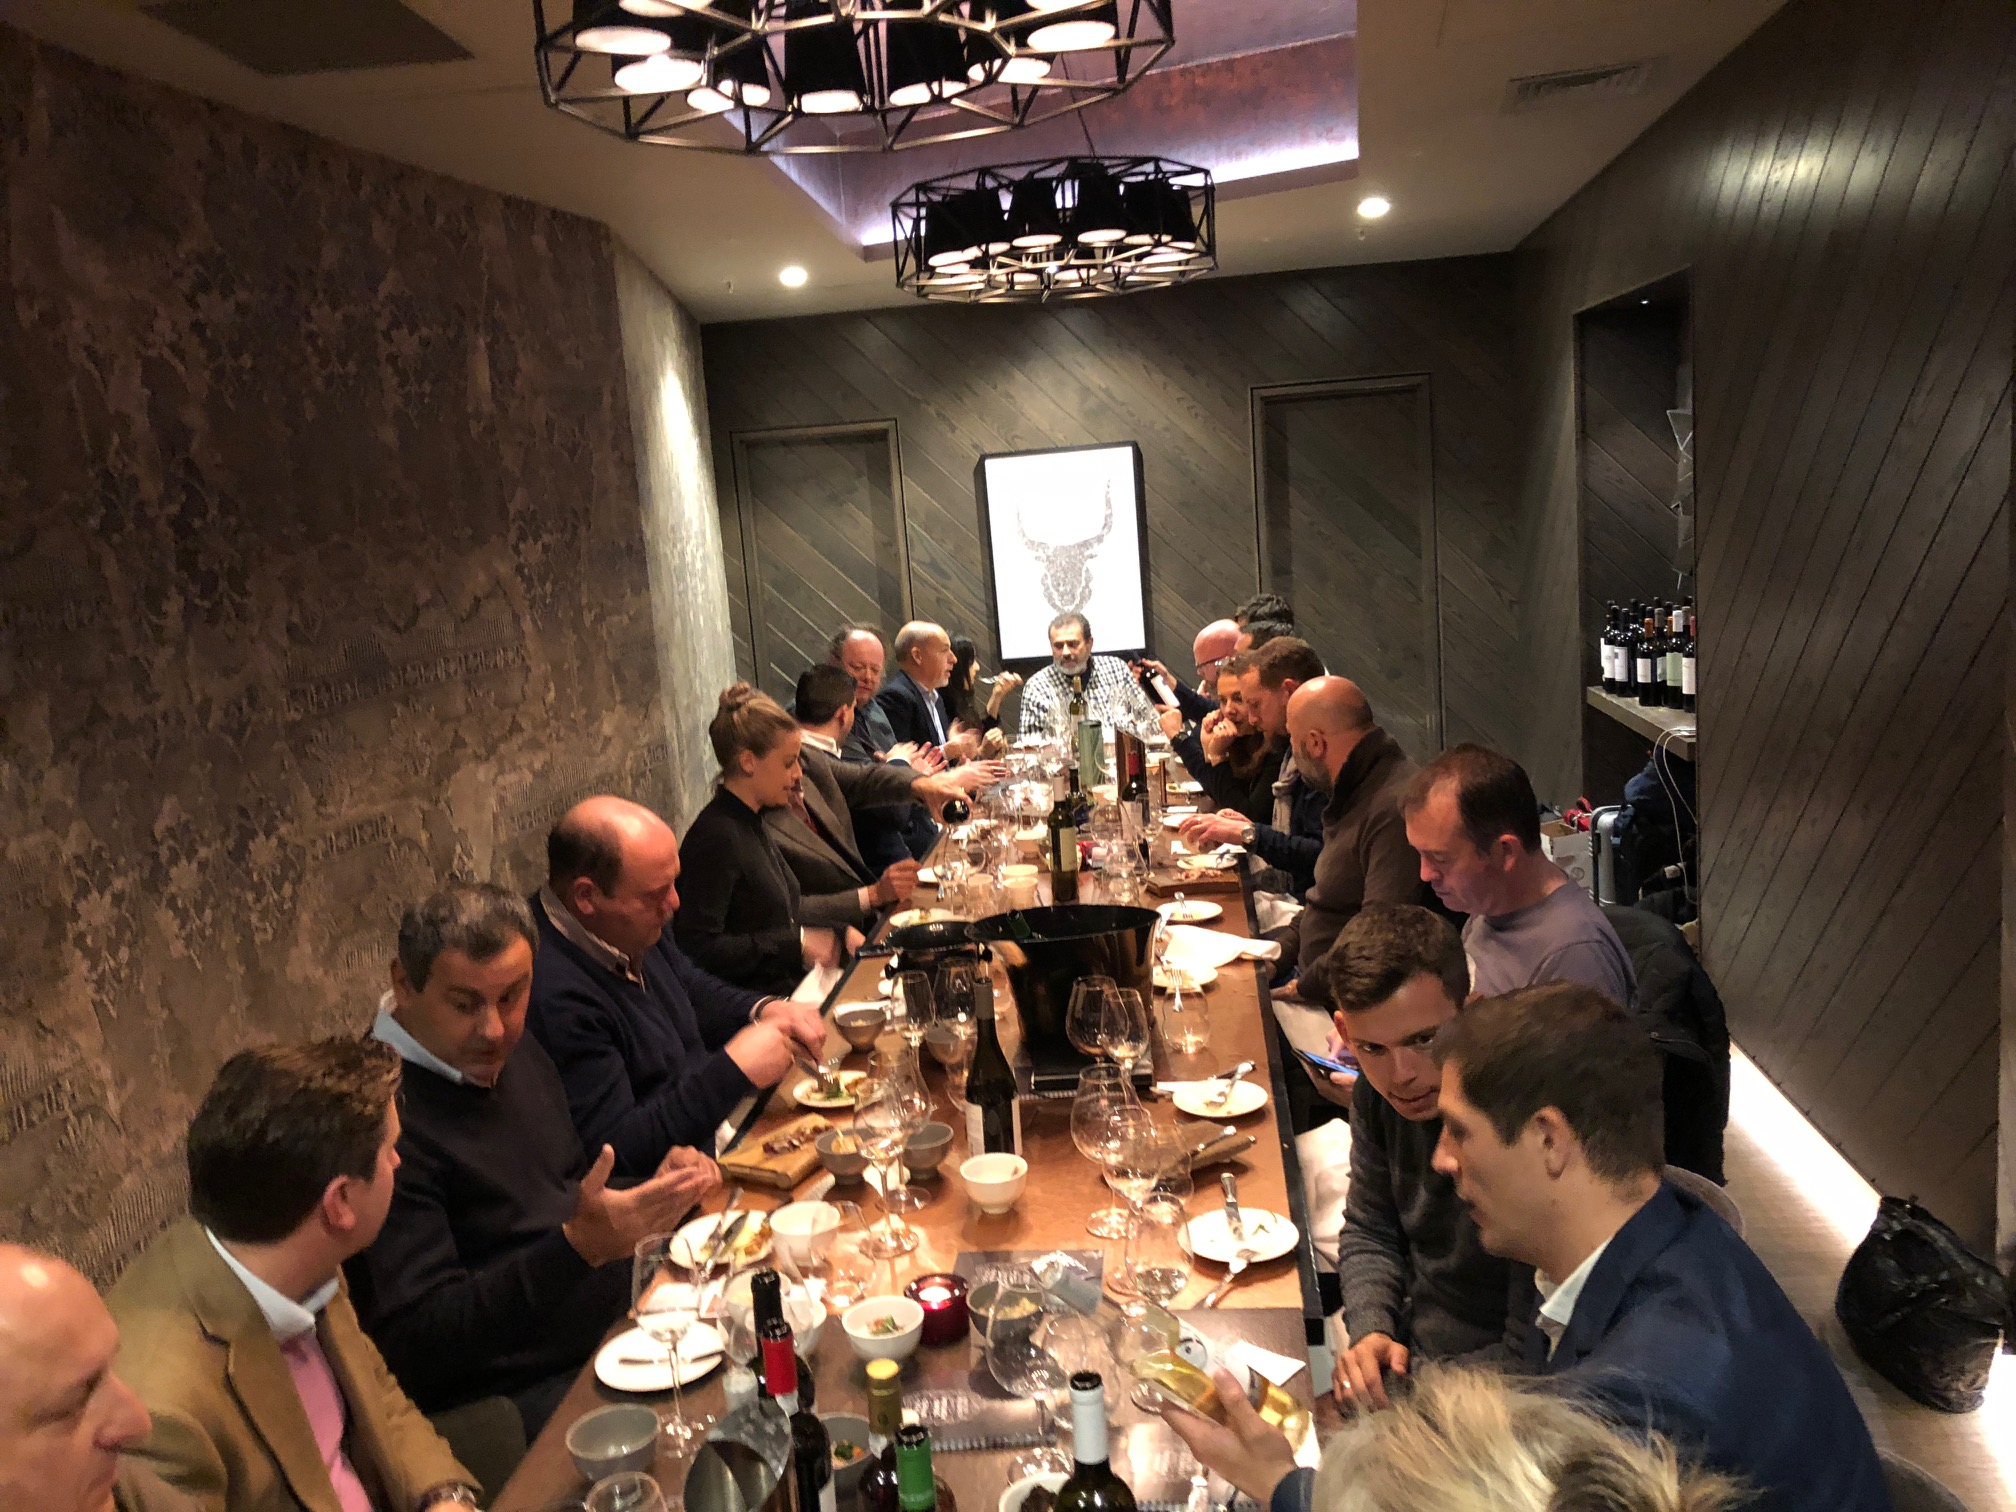 The Douro Valley debate was a chance for key UK buyers and wine consultants to assess their opportunities for the UK market